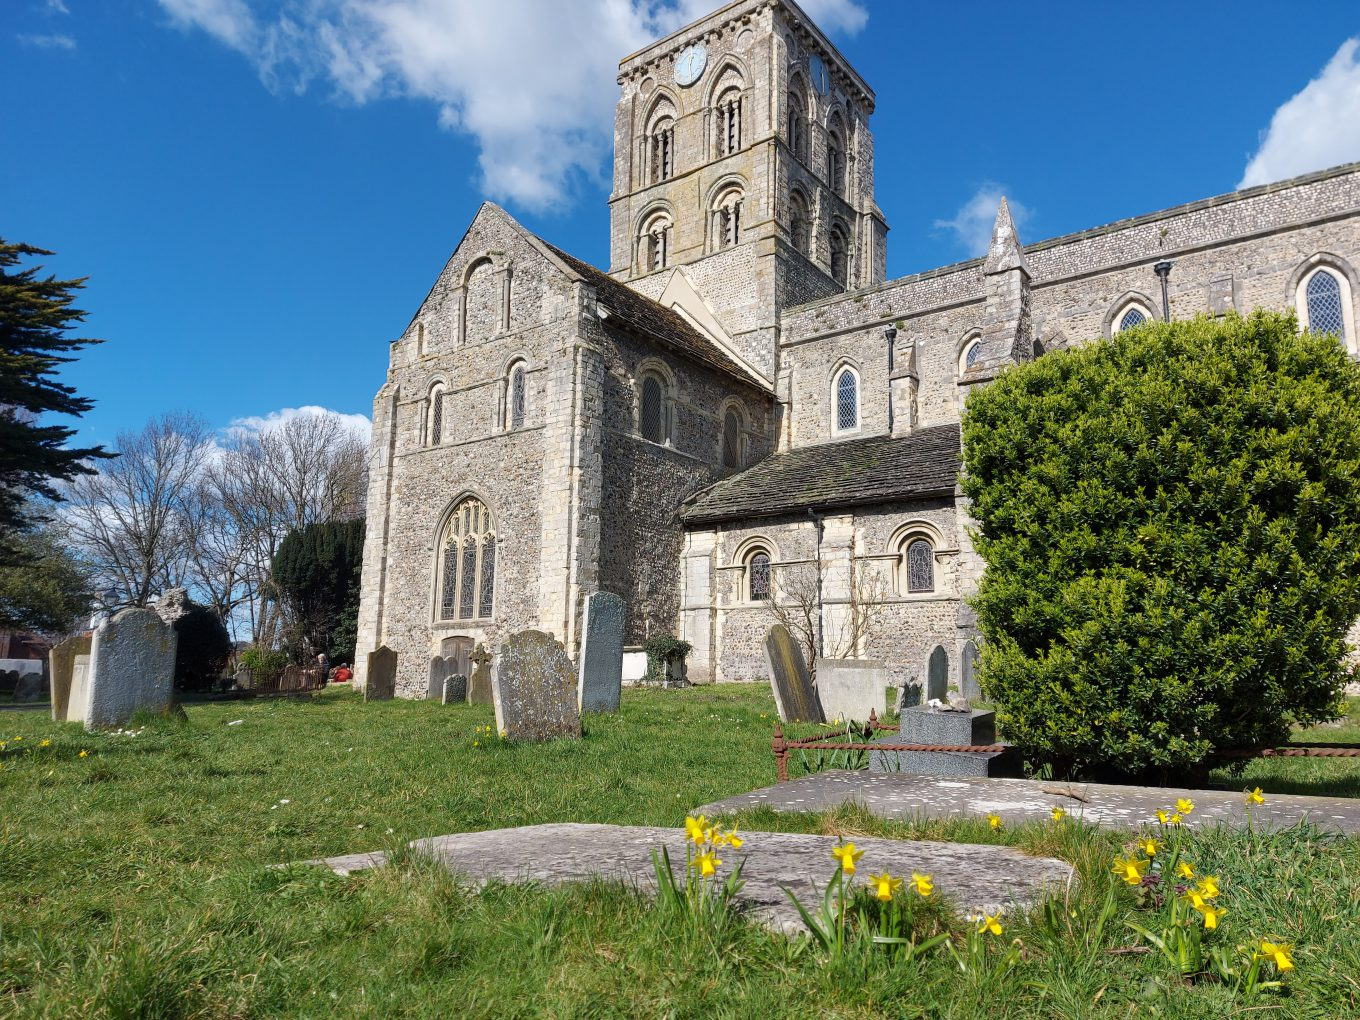 St Mary De Haura Church from the church yard on a Spring Day with Daffodils in the foreground